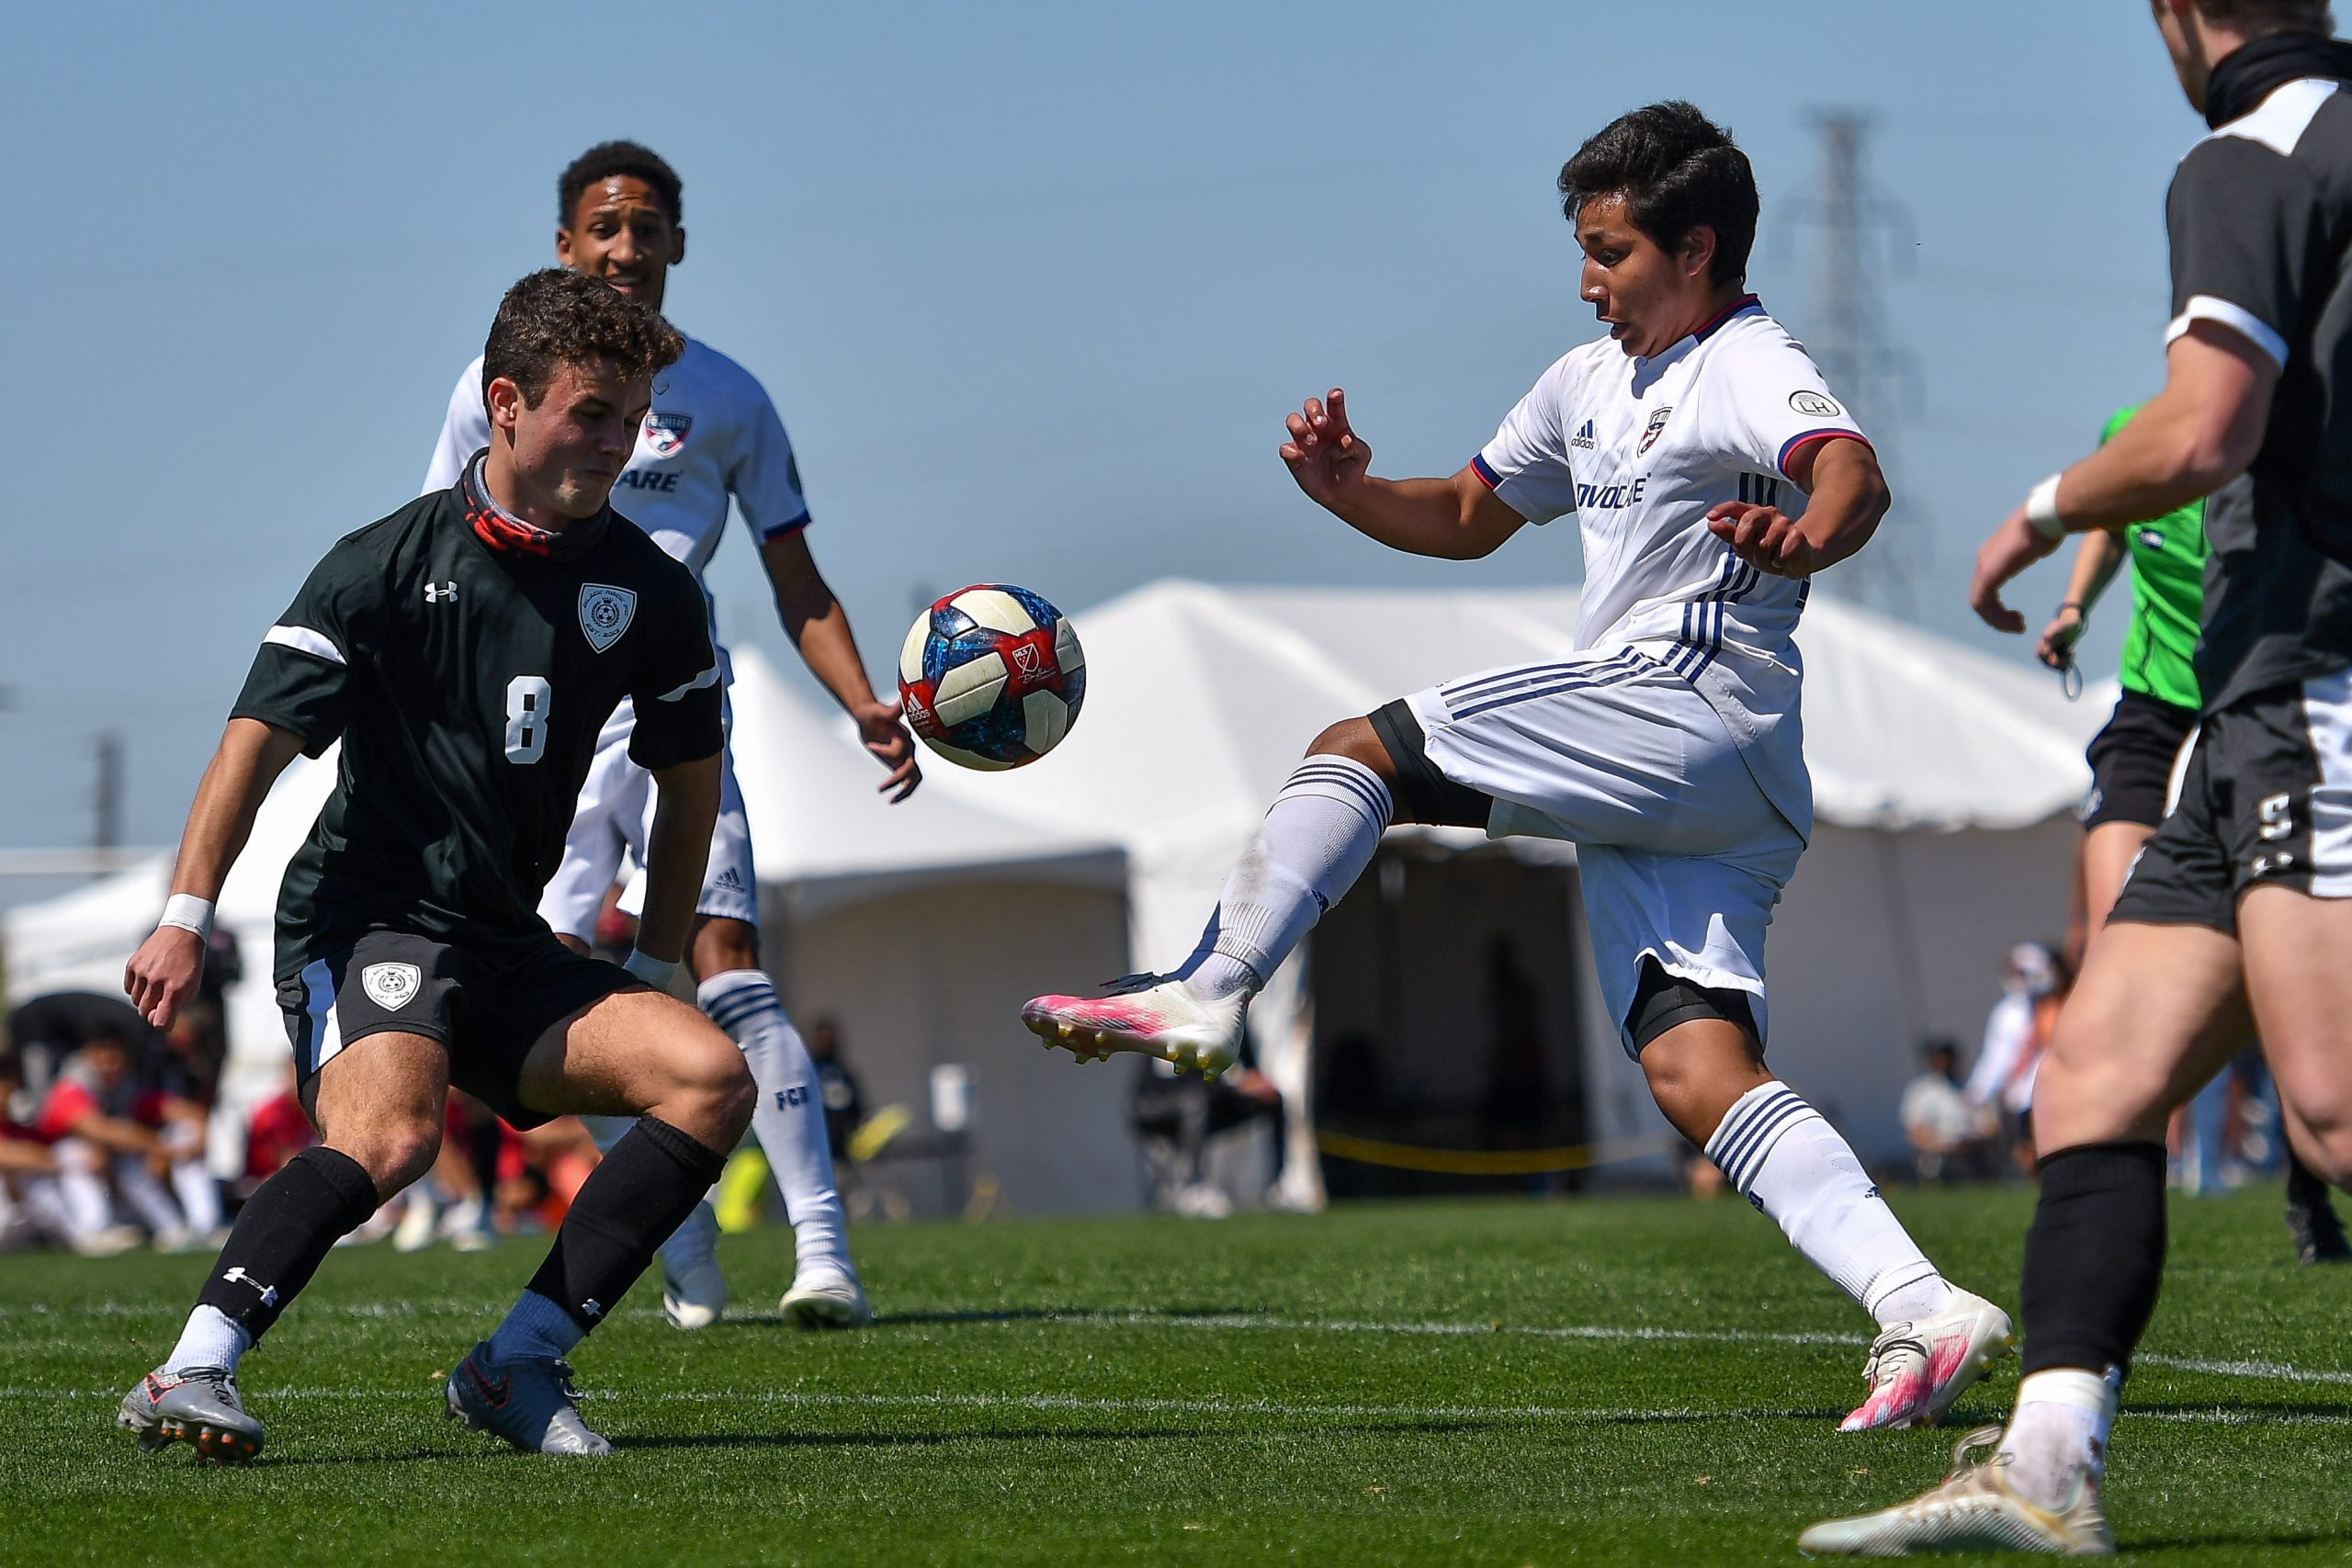 Cesar Elizalde tips the ball up in the Dallas Cup match against Black Rock FC.